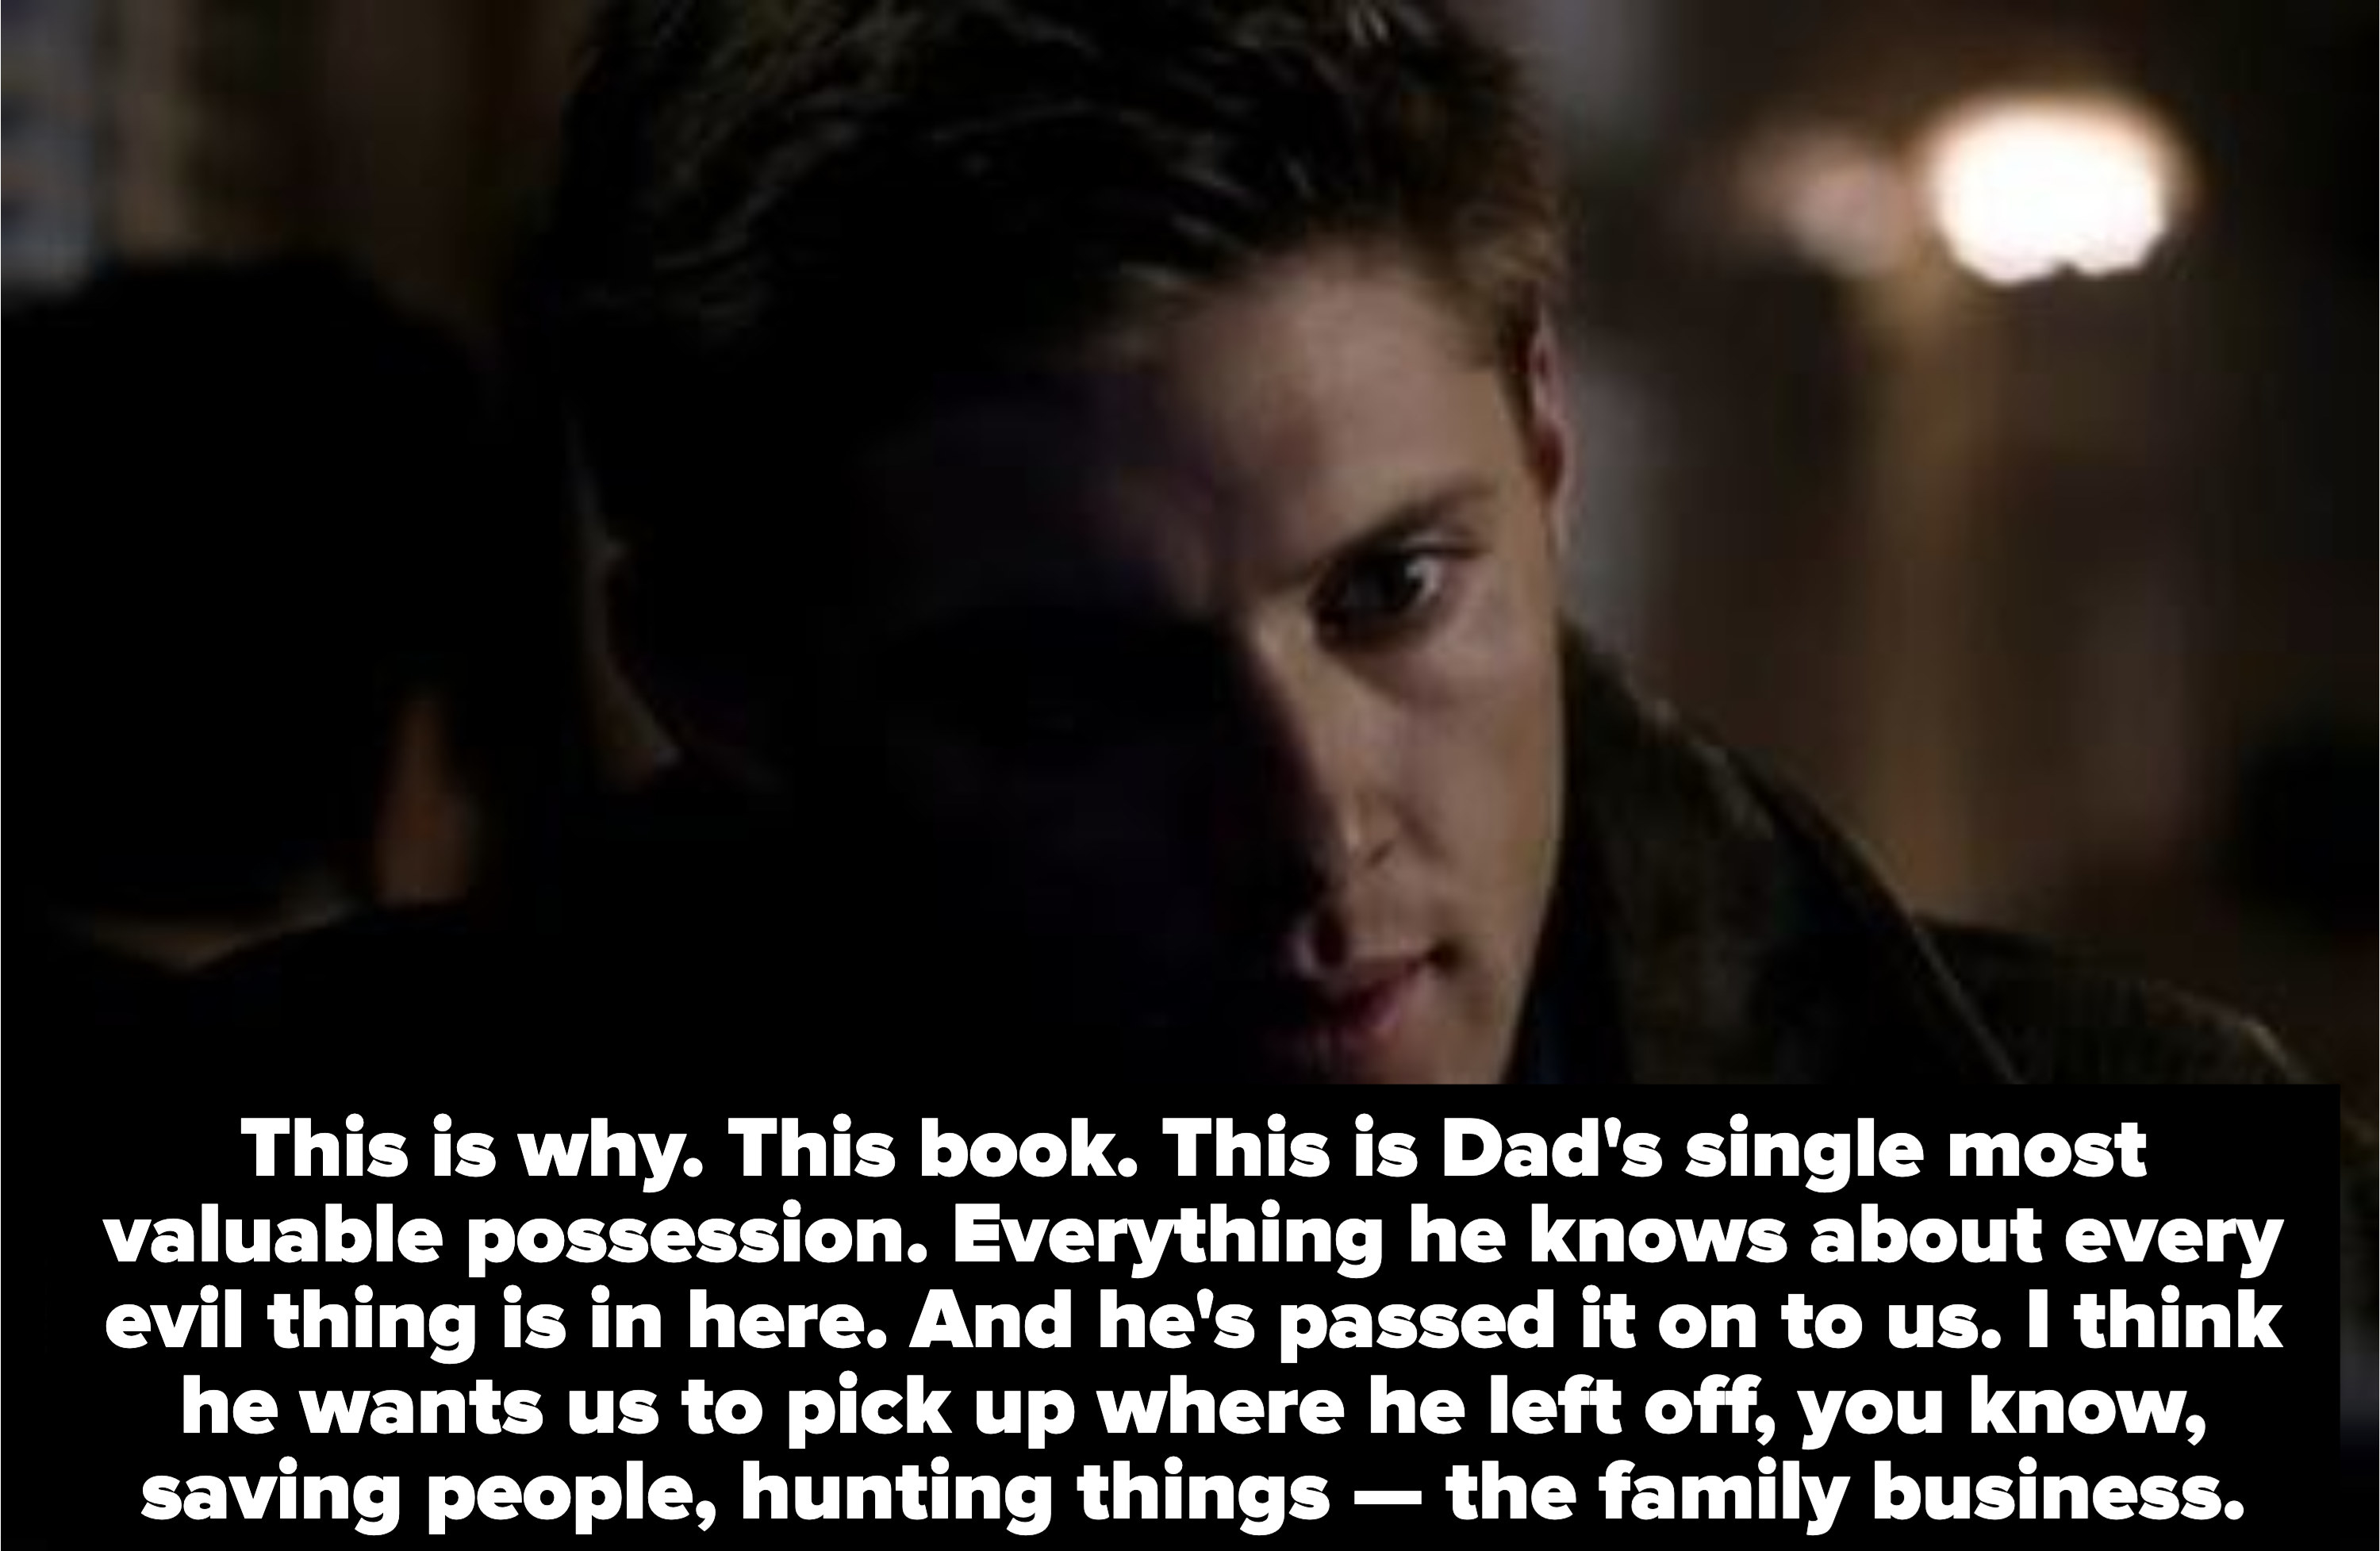 dean says This is Dad's single most valuable possession. Everything he knows about every evil thing is in here. And he's passed it on to us. I think he wants us to pick up where he left off, you know, saving people, hunting things — the family business.